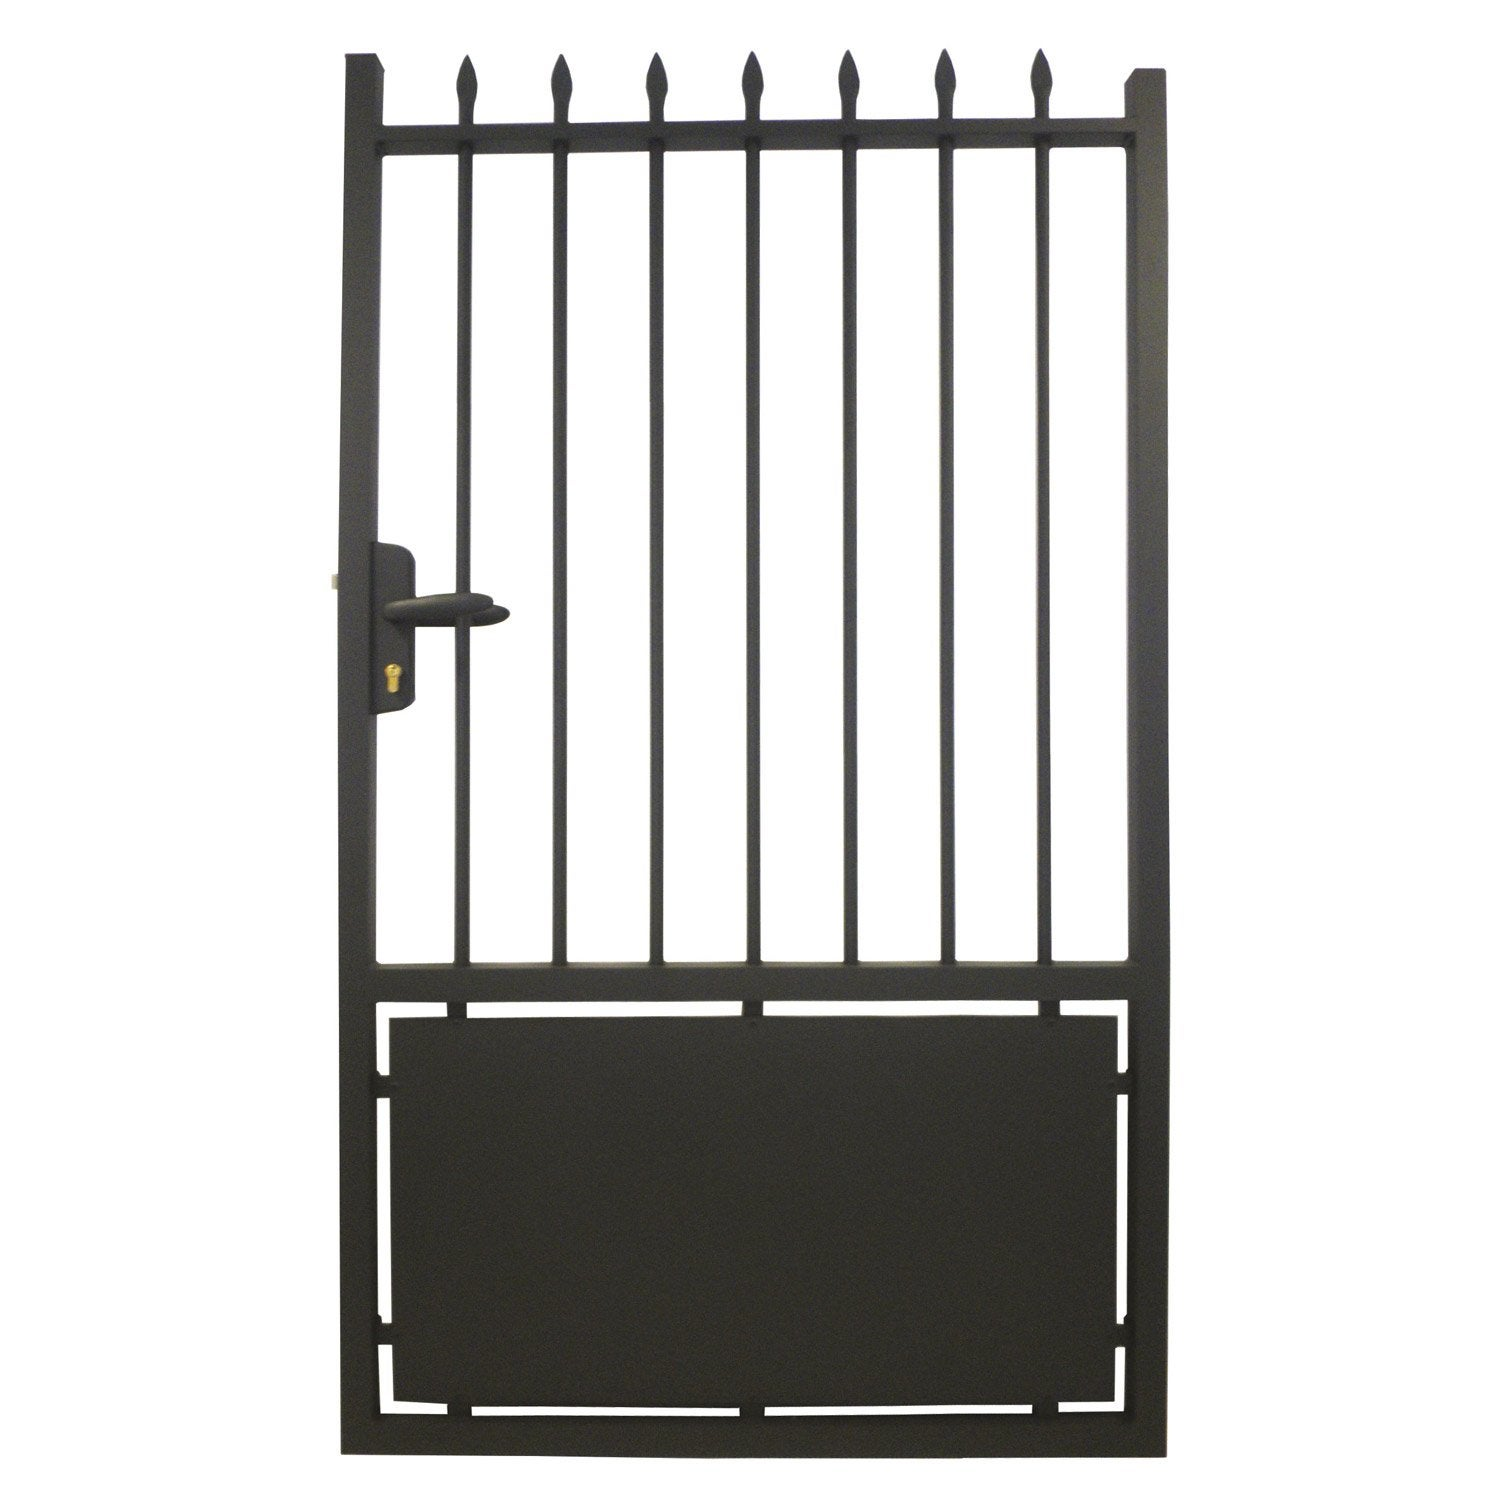 Portillon battant en aluminium lancieux x cm leroy merlin - Portillon double battant ...